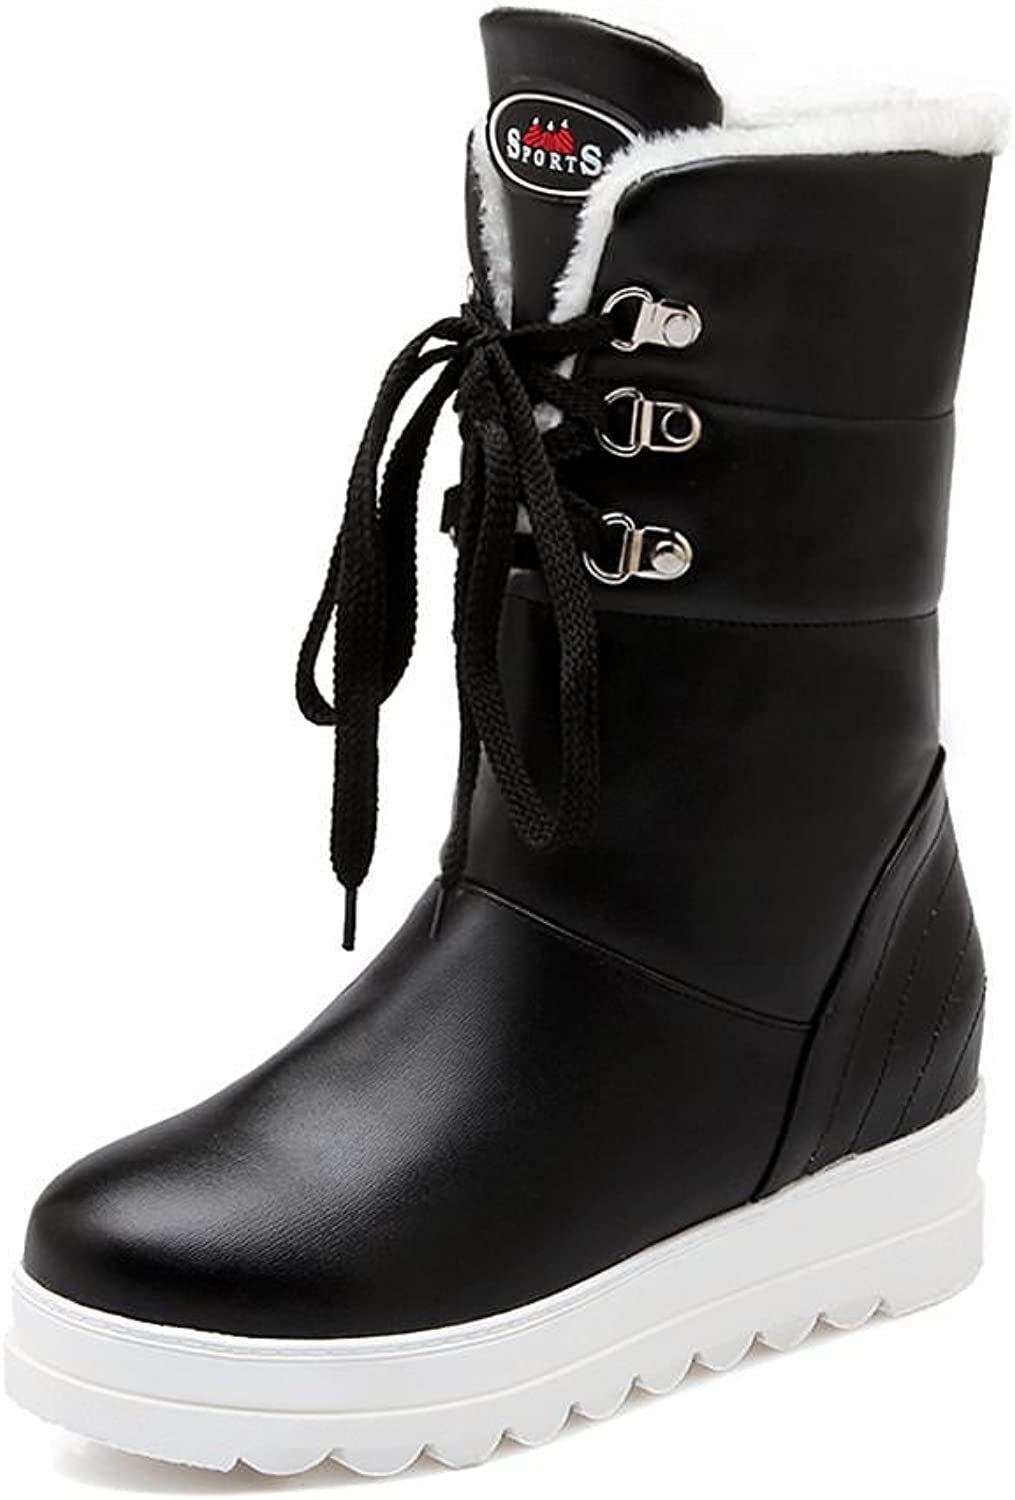 DecoStain Women's Lace Up Combat Platform Boots